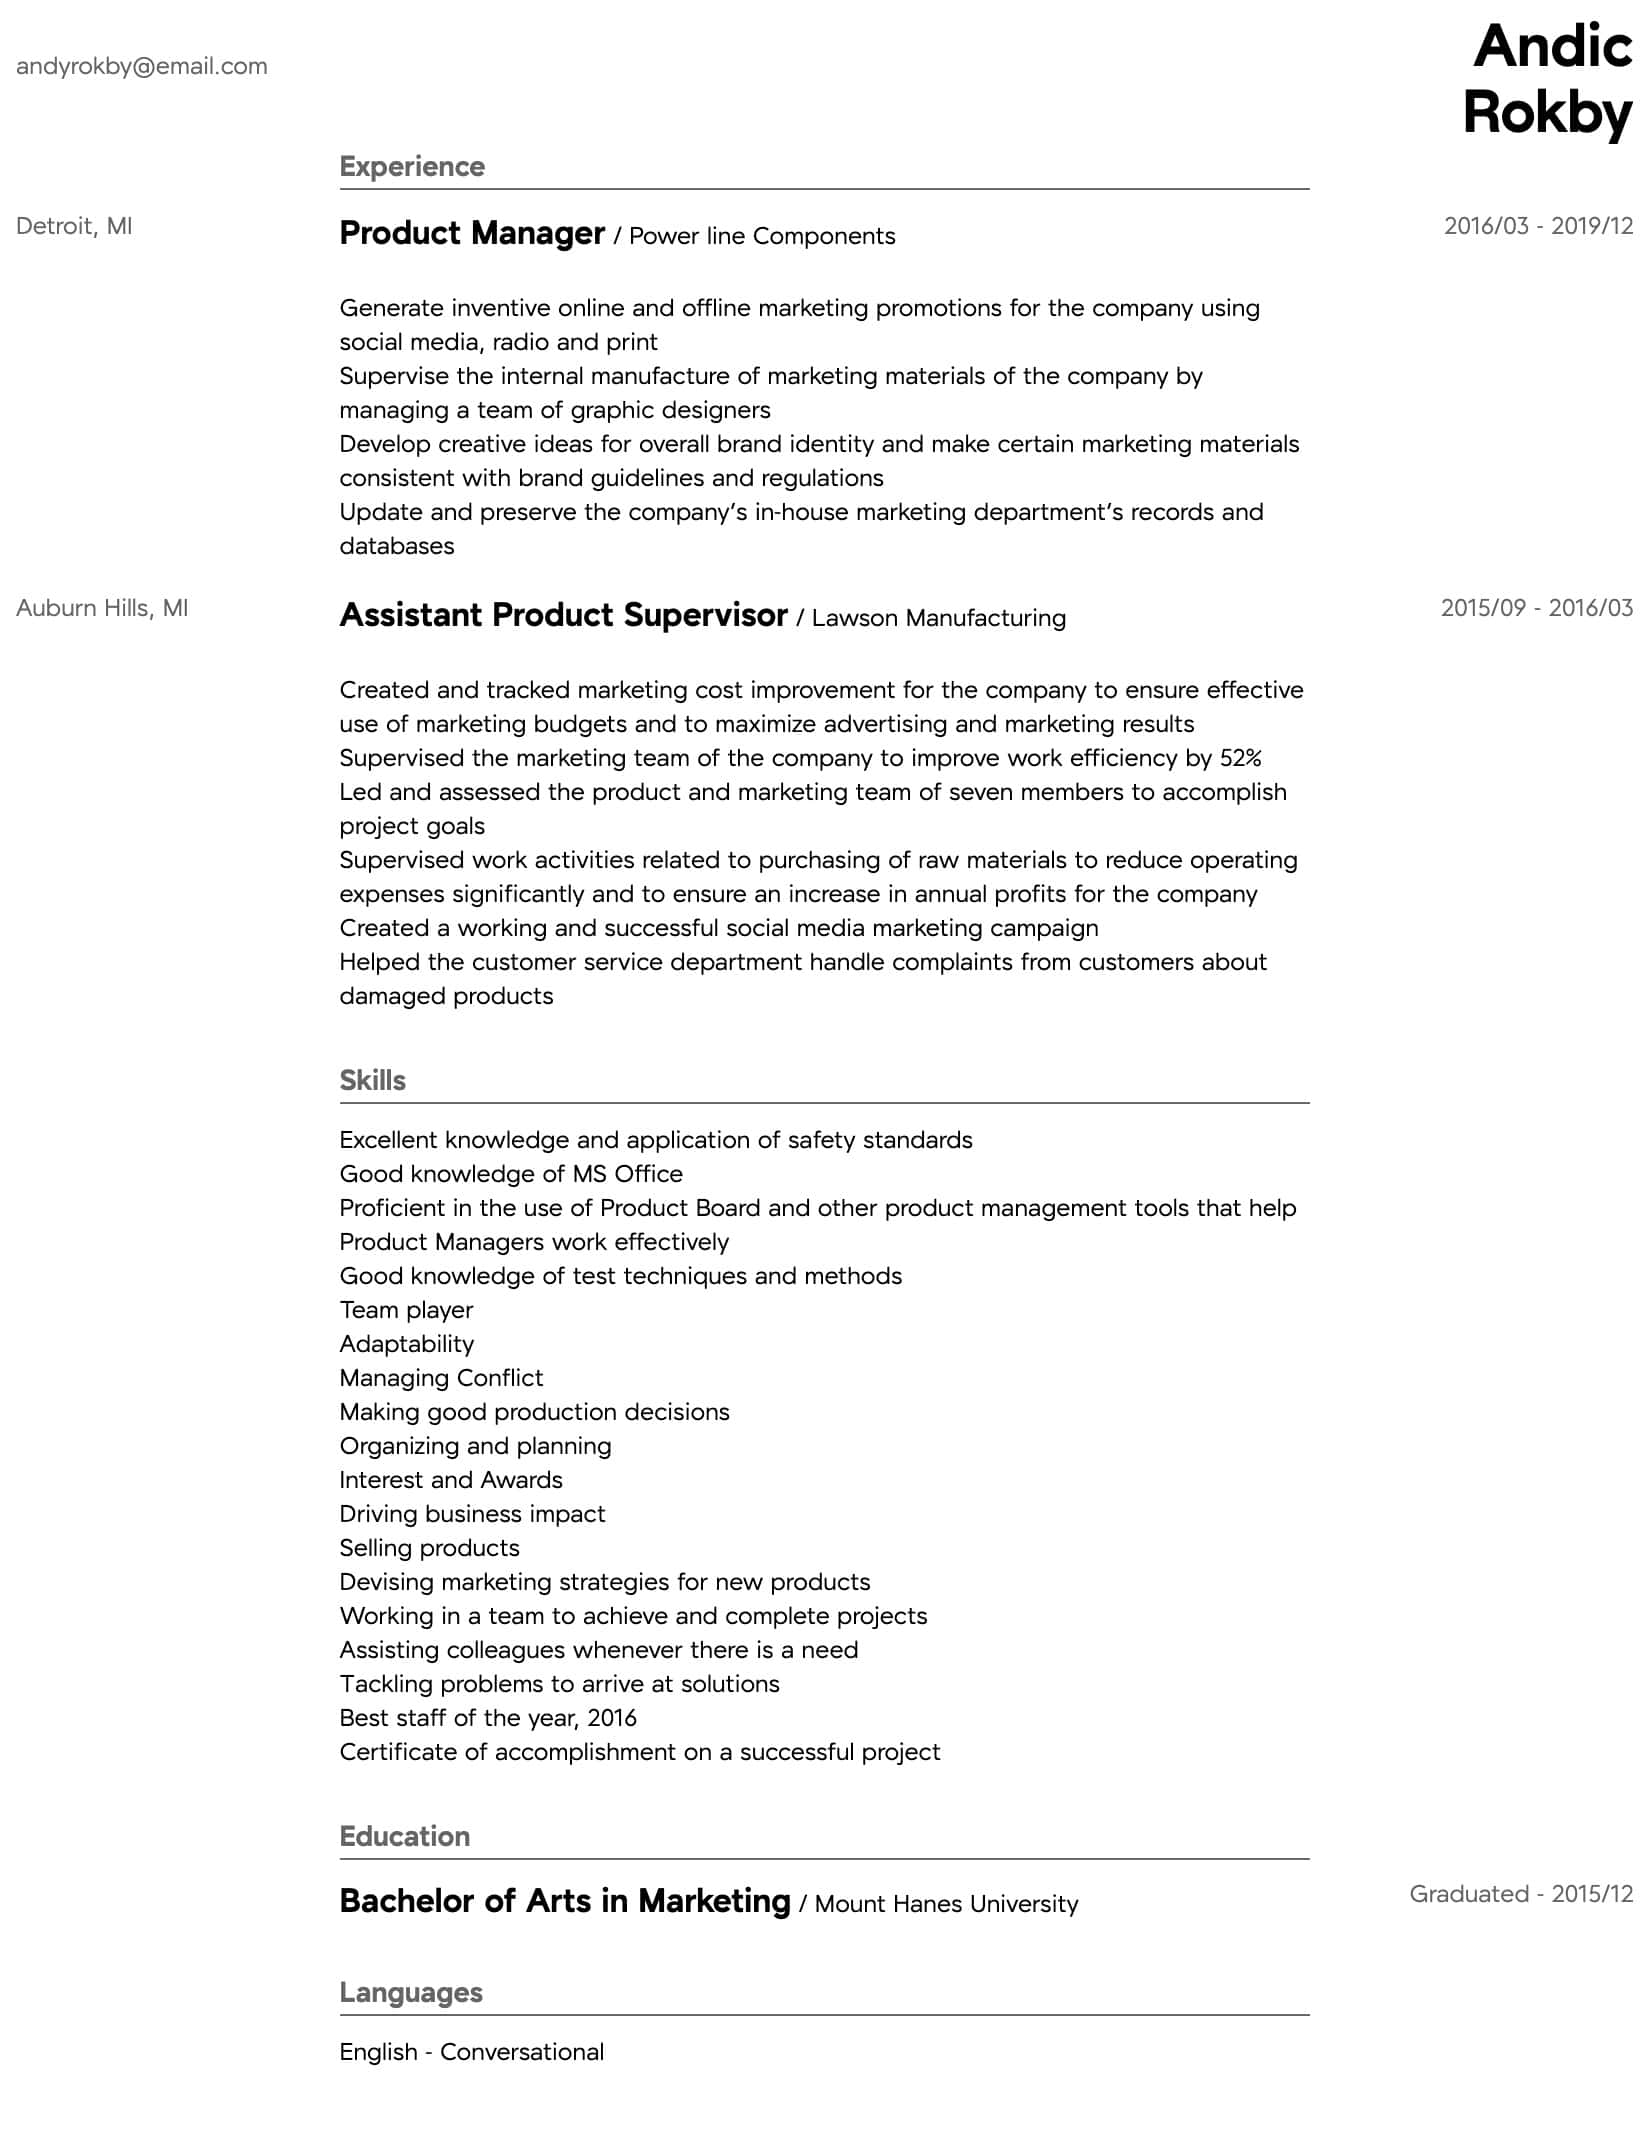 product manager resume samples all experience levels template intermediate attributes for Resume Product Manager Resume Template